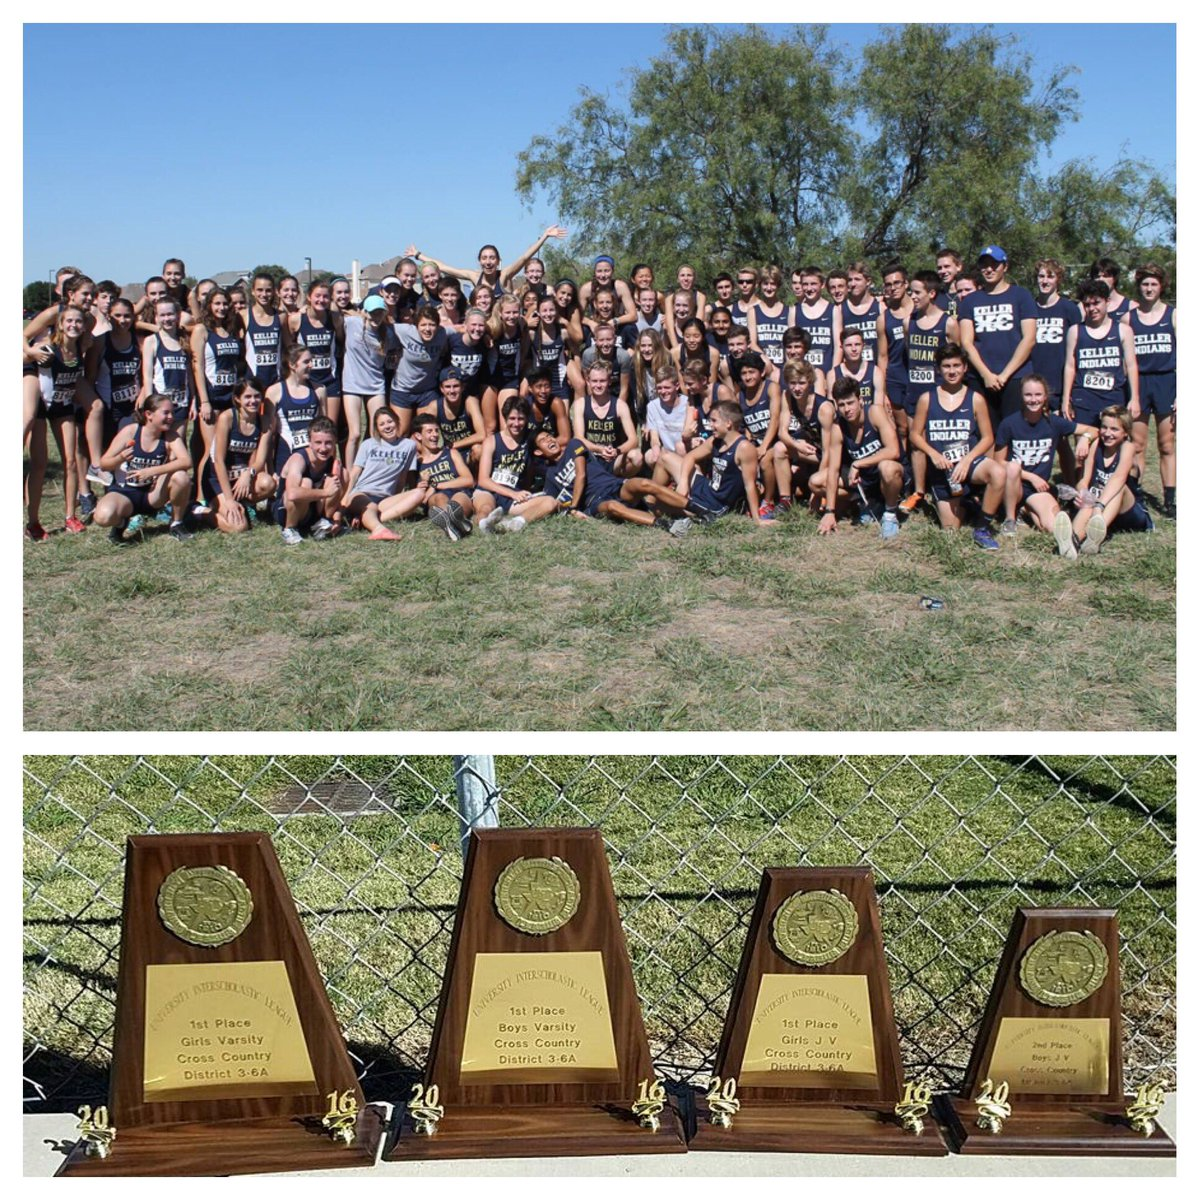 It was a great Friday. 3-6A District Champs: Varsity Boys/Girls and JV Girls. JV Boys 2nd. Headed to Lubbock for Regionals! #rememberthegoal <br>http://pic.twitter.com/KECEN0UqIu